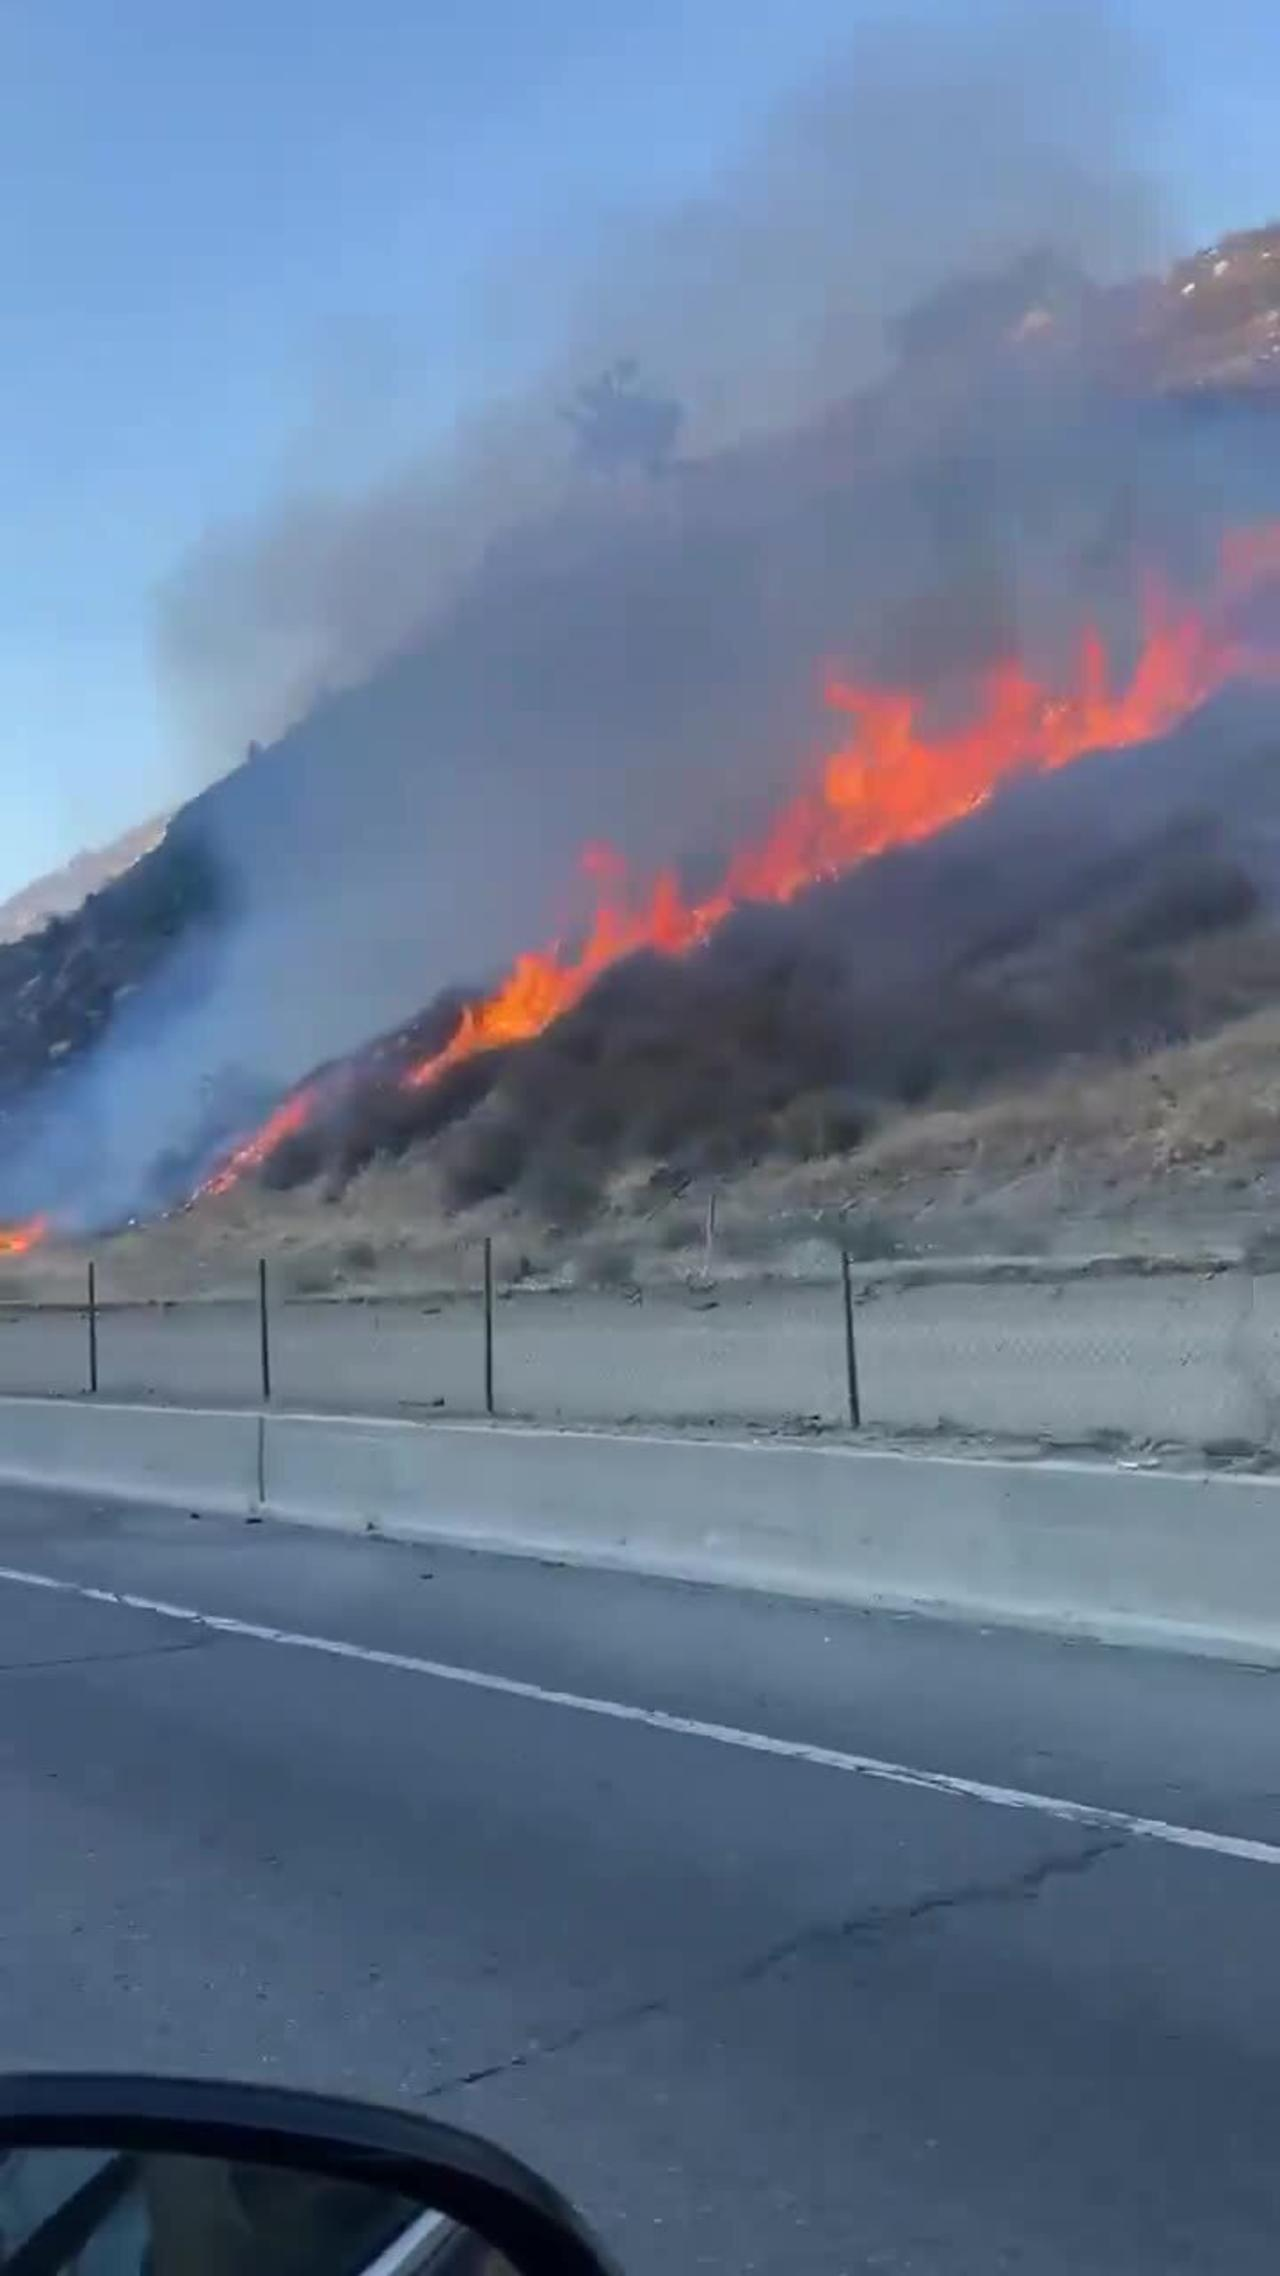 California wildfire rages right next to highway